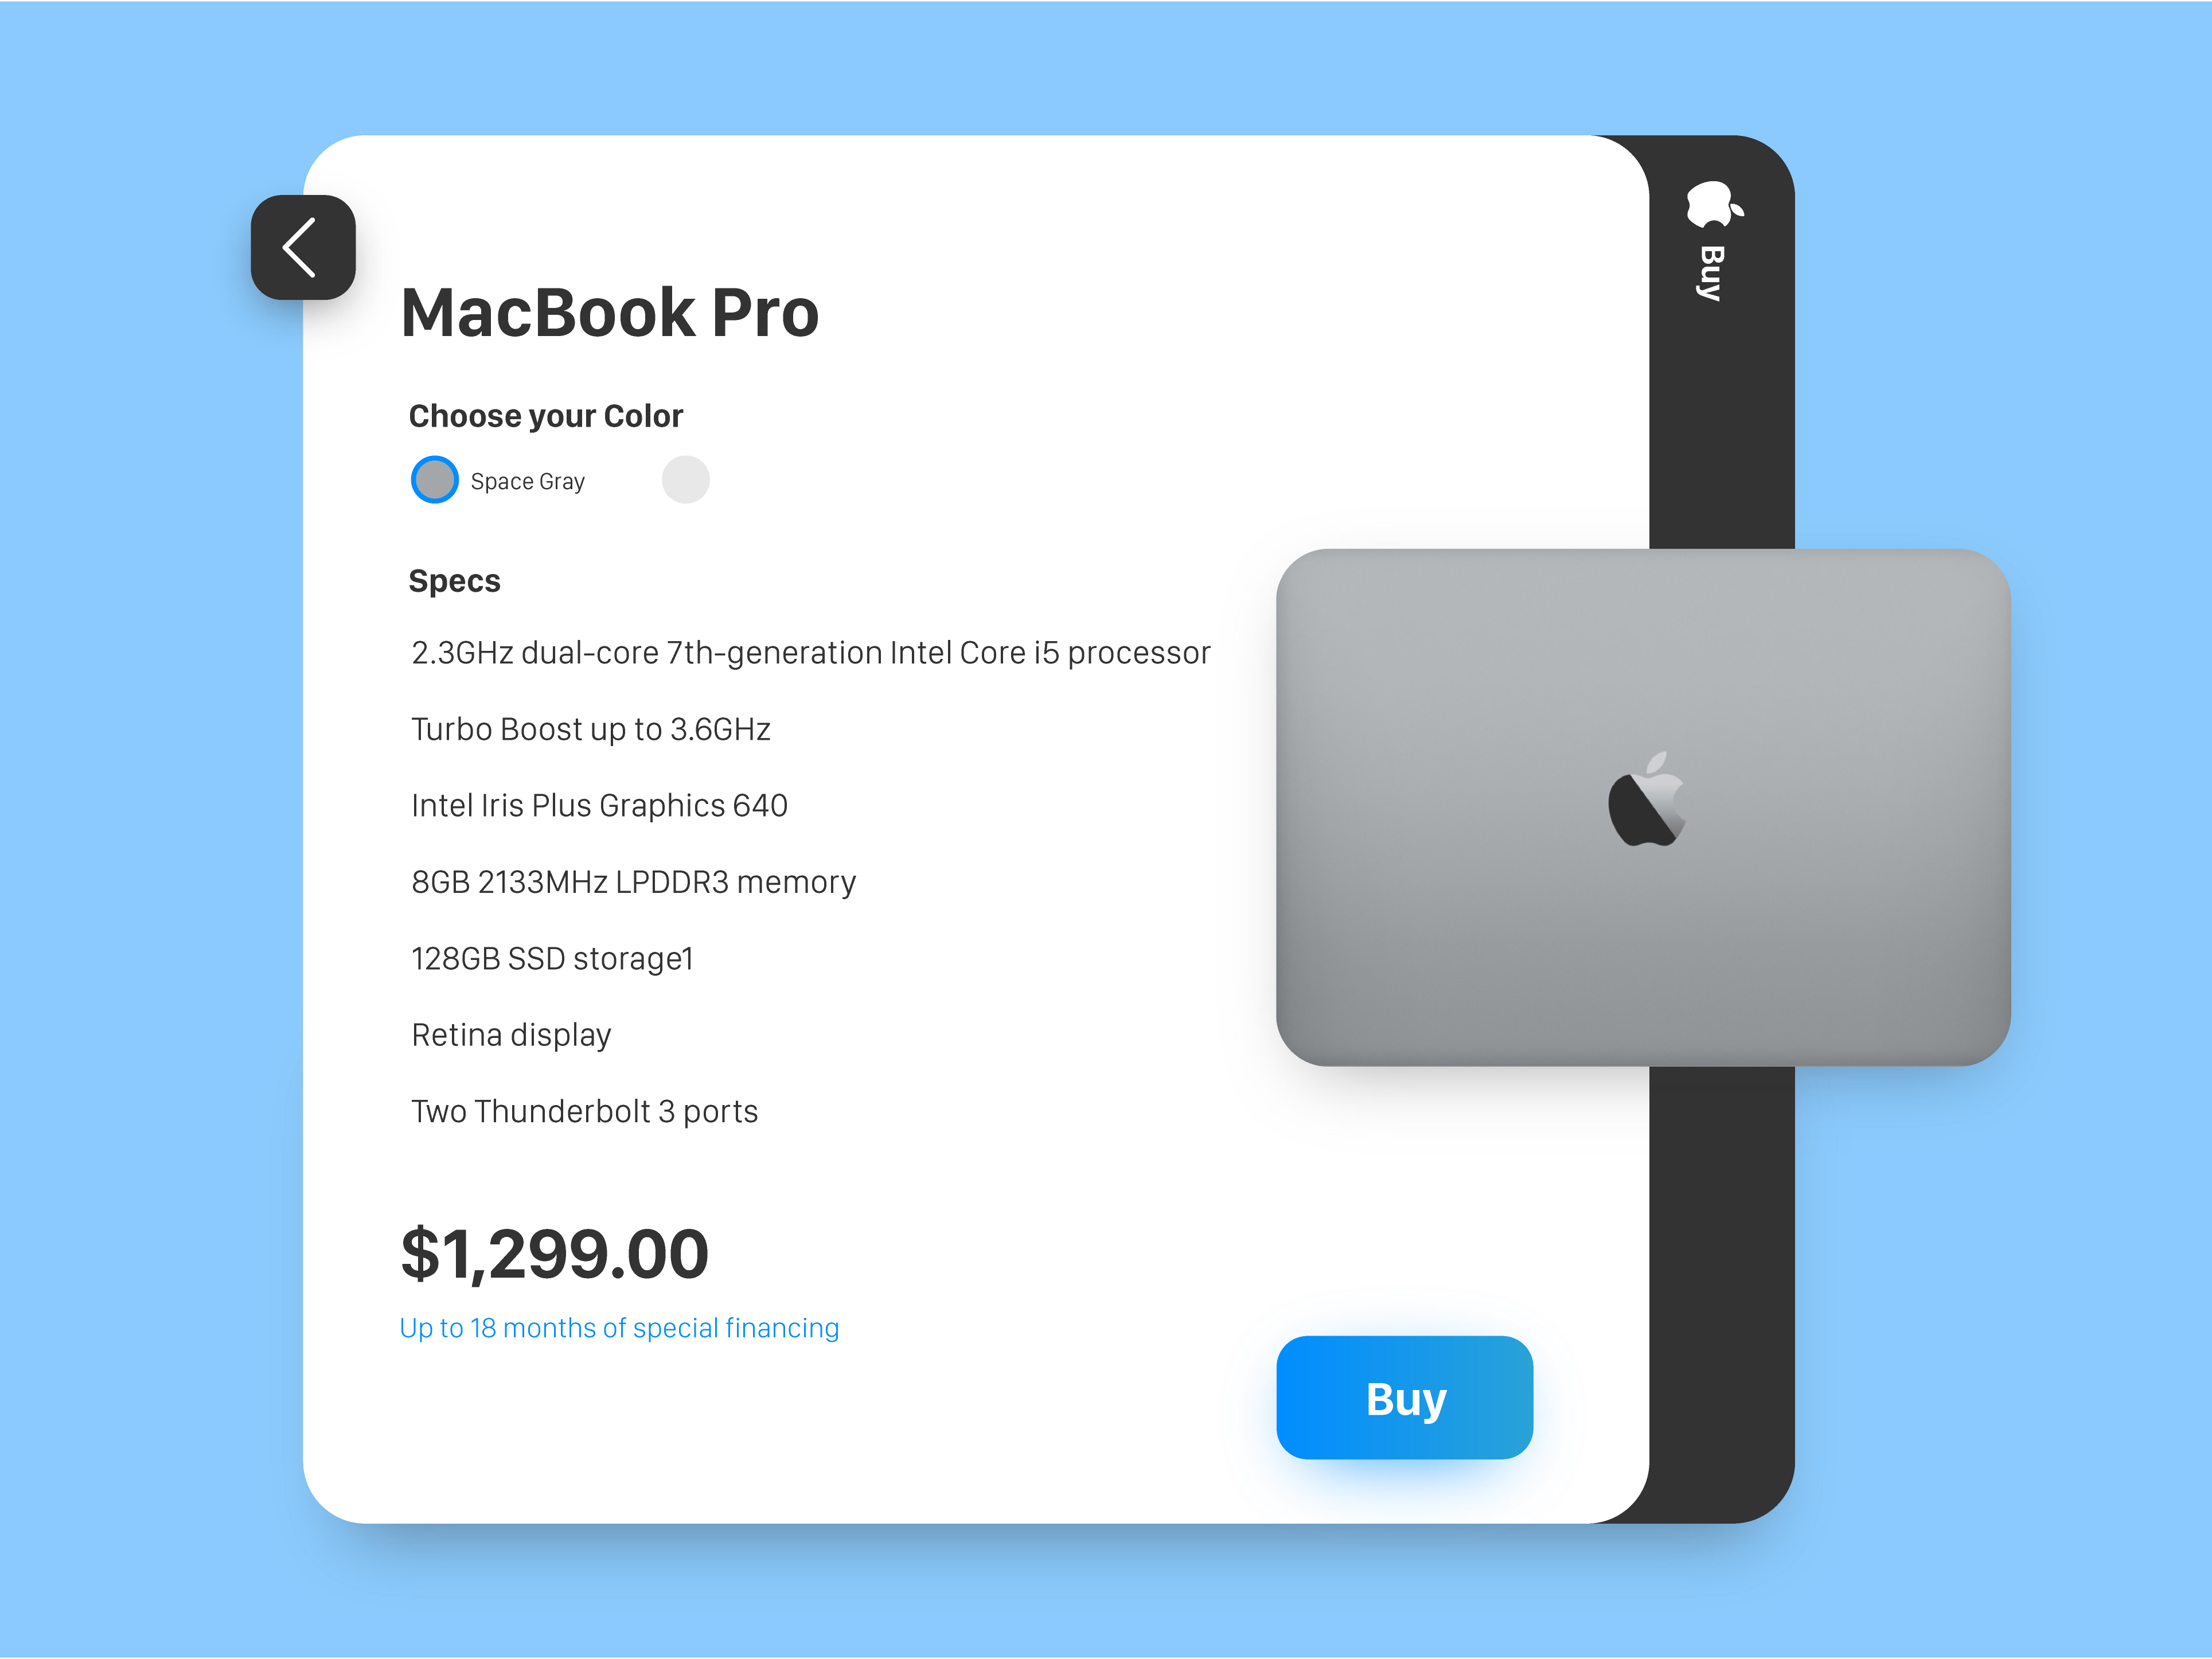 Product Card - Redesign from 2015 version